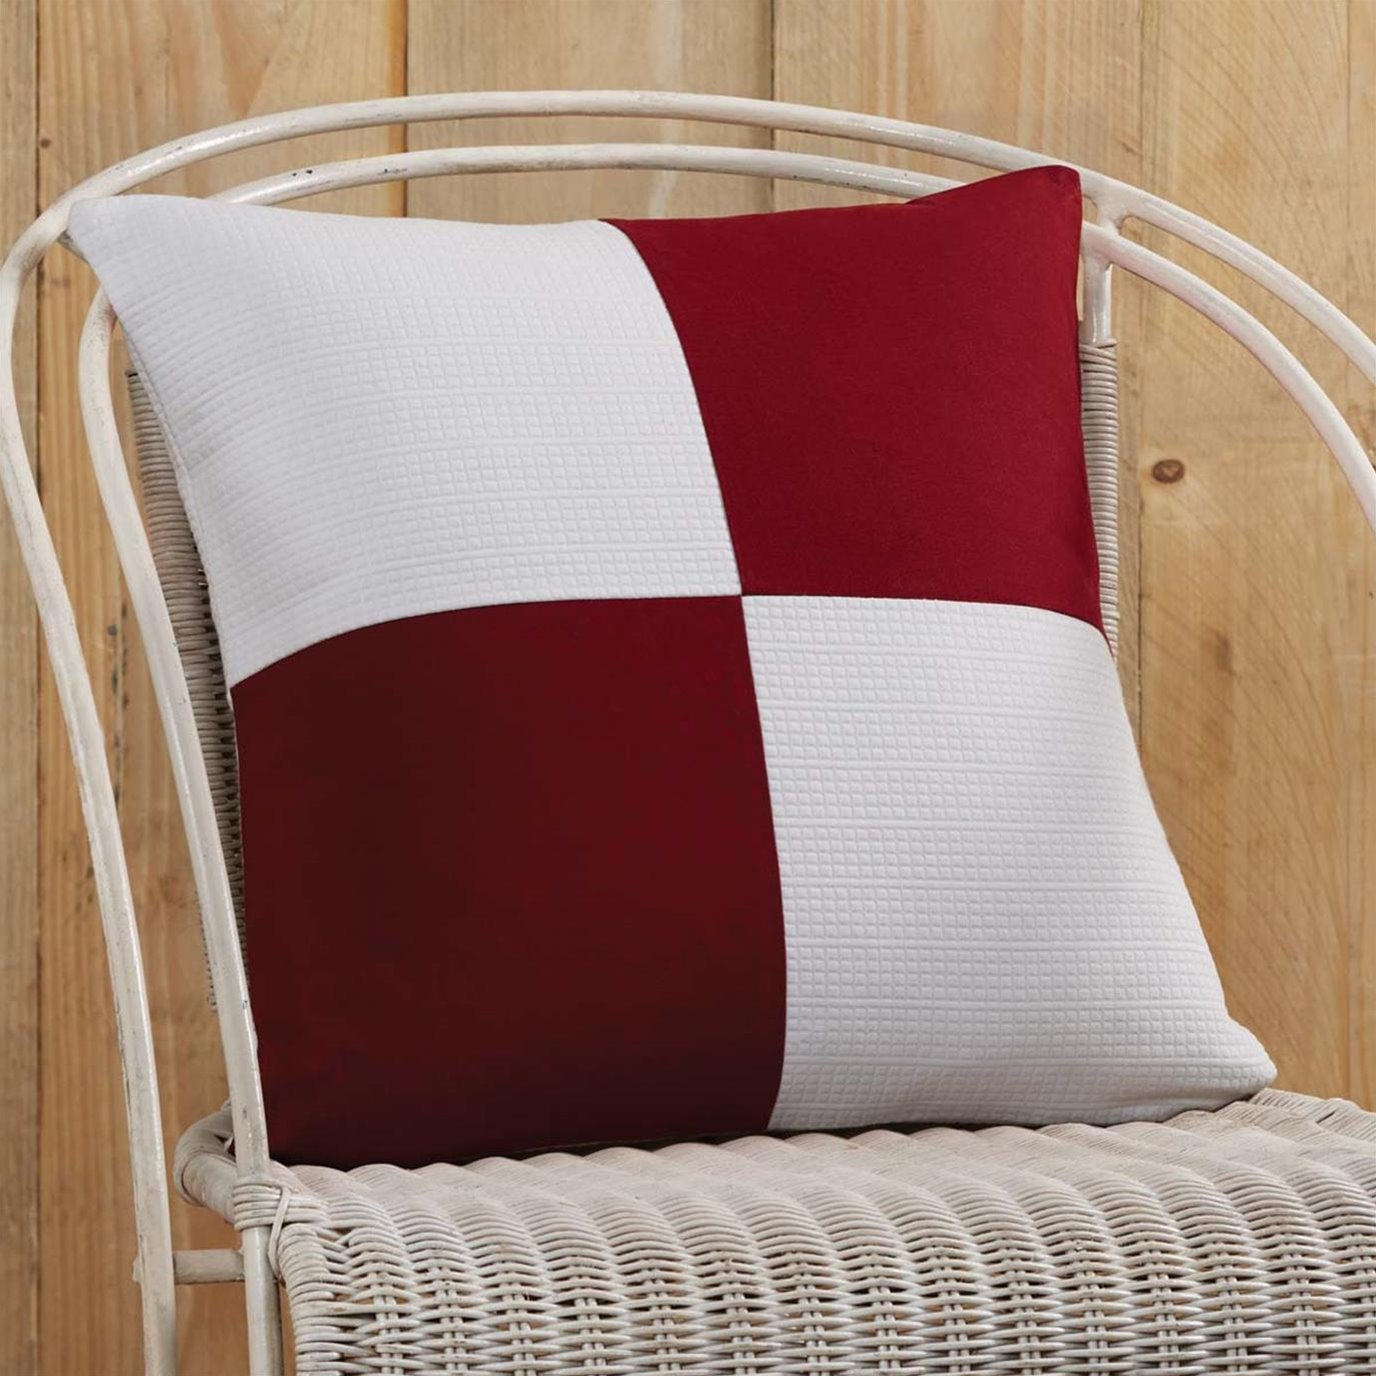 Red and White Patchwork Pillow Cover 18x18